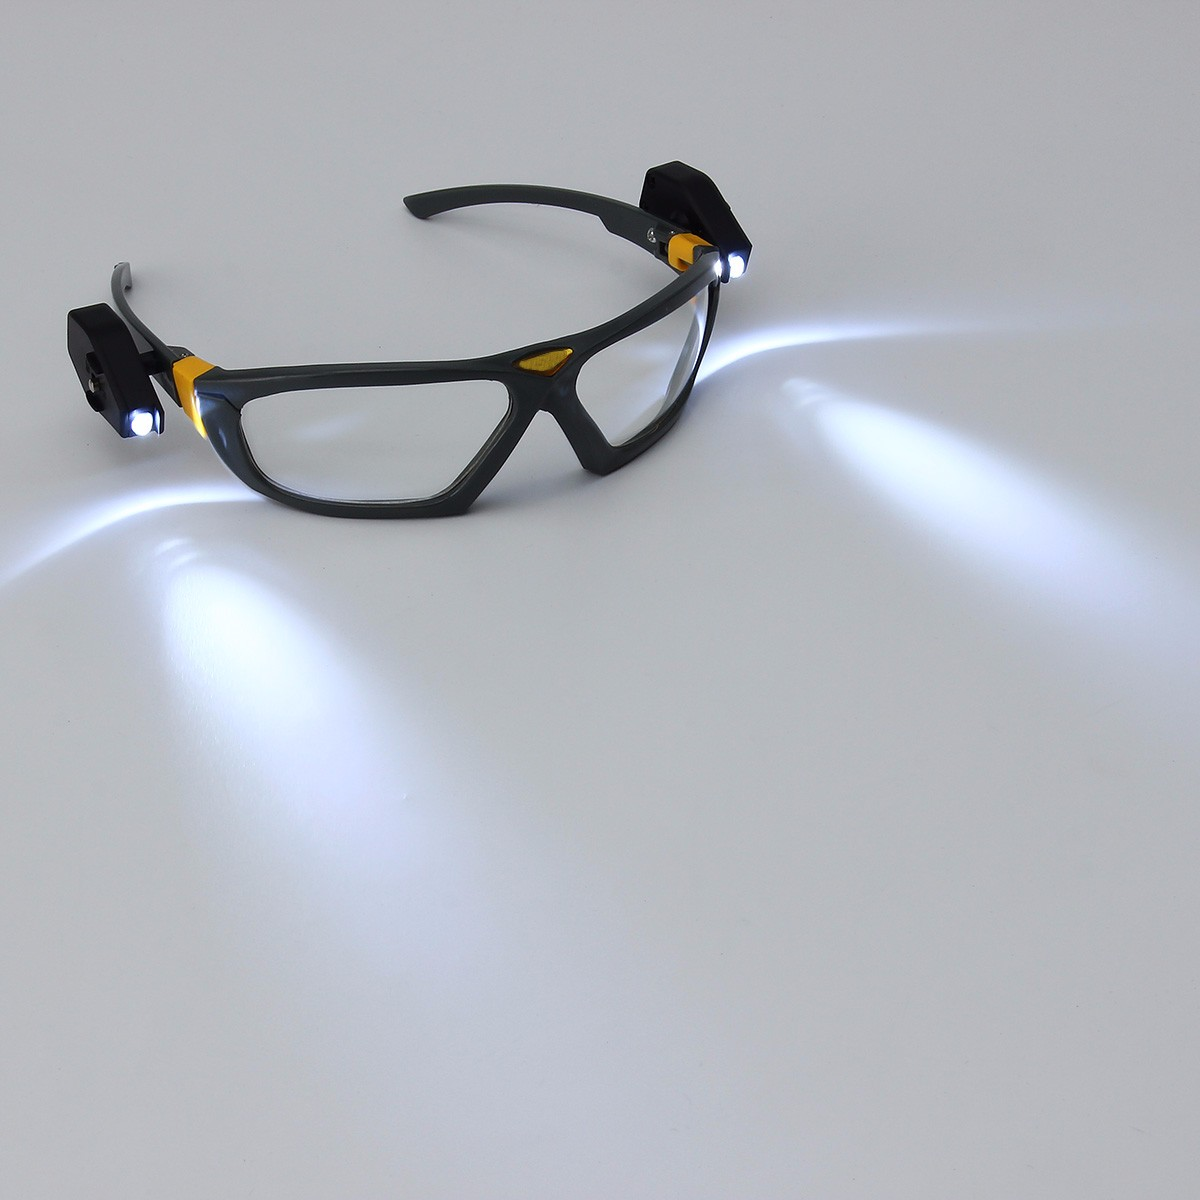 2-Light Night Lamp Eyeglass Camping Cycling Safety Reading Inspector Protective Glasses Goggles